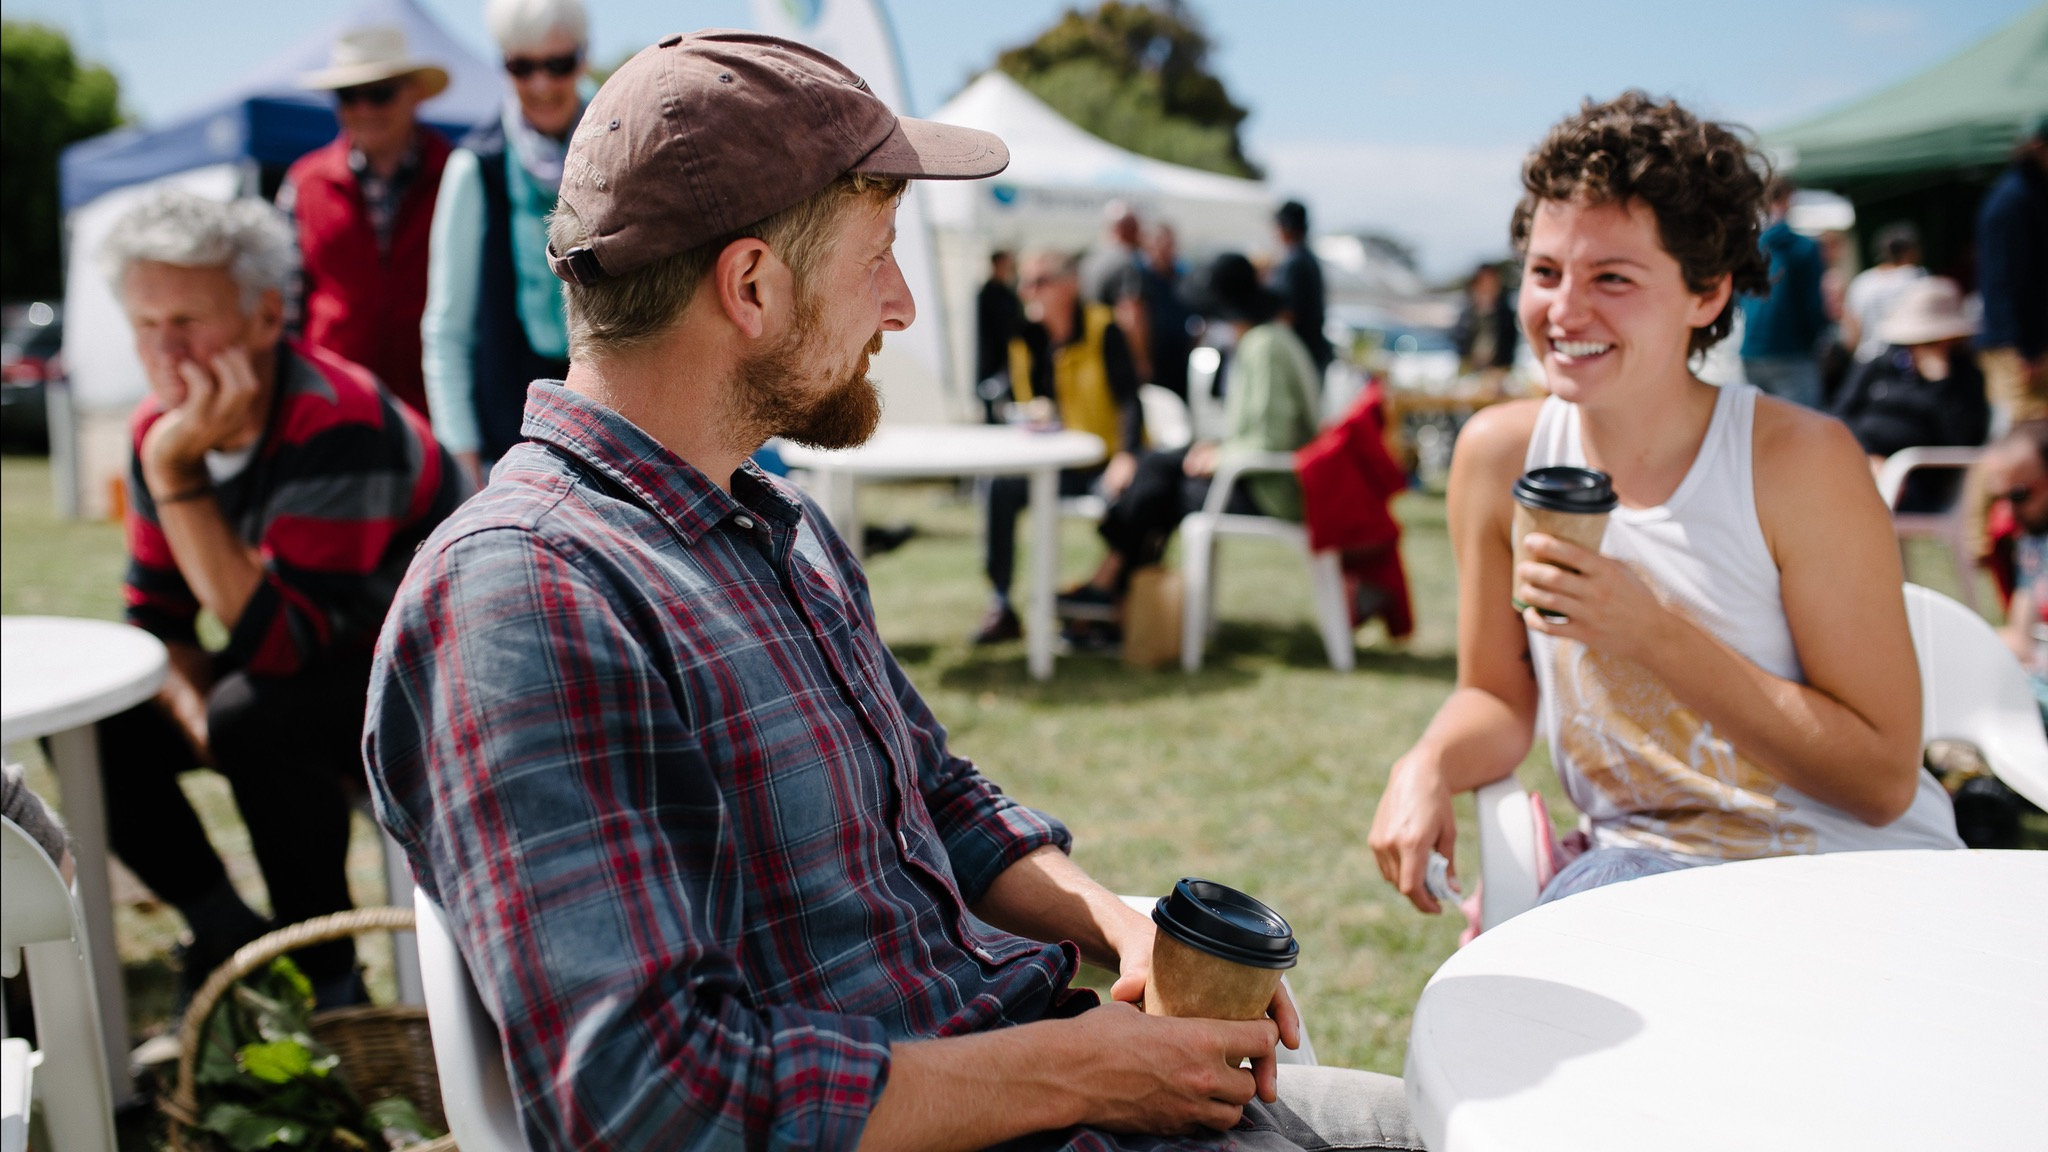 Patrons relaxing at the Apollo Bay Farmers Market